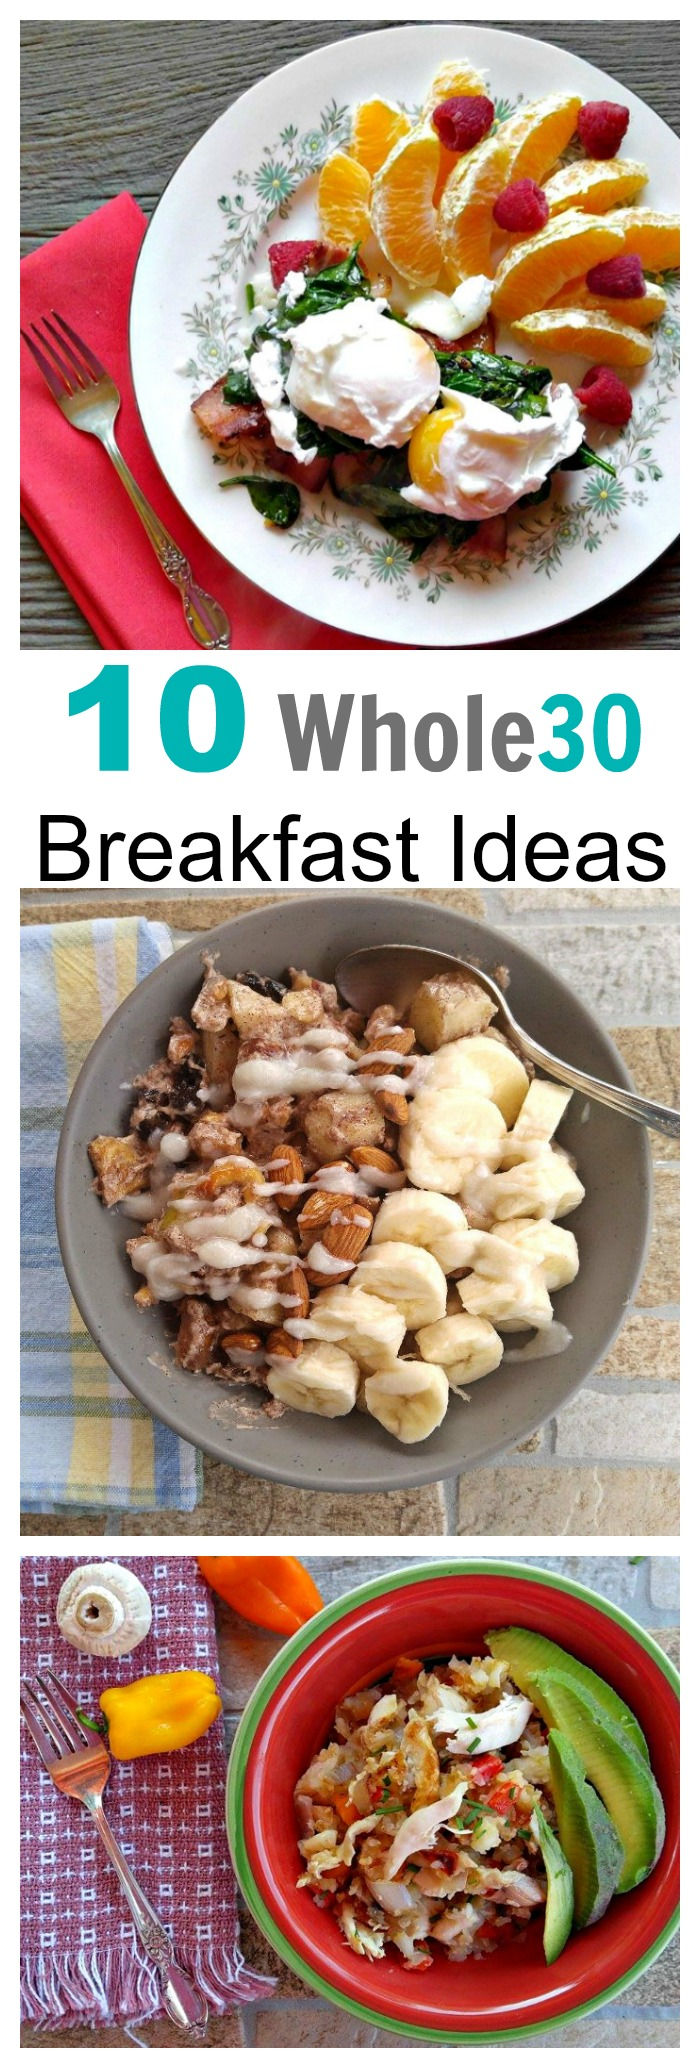 Whole30 Breakfast Recipes - Easy Paleo Ideas to Start your ...